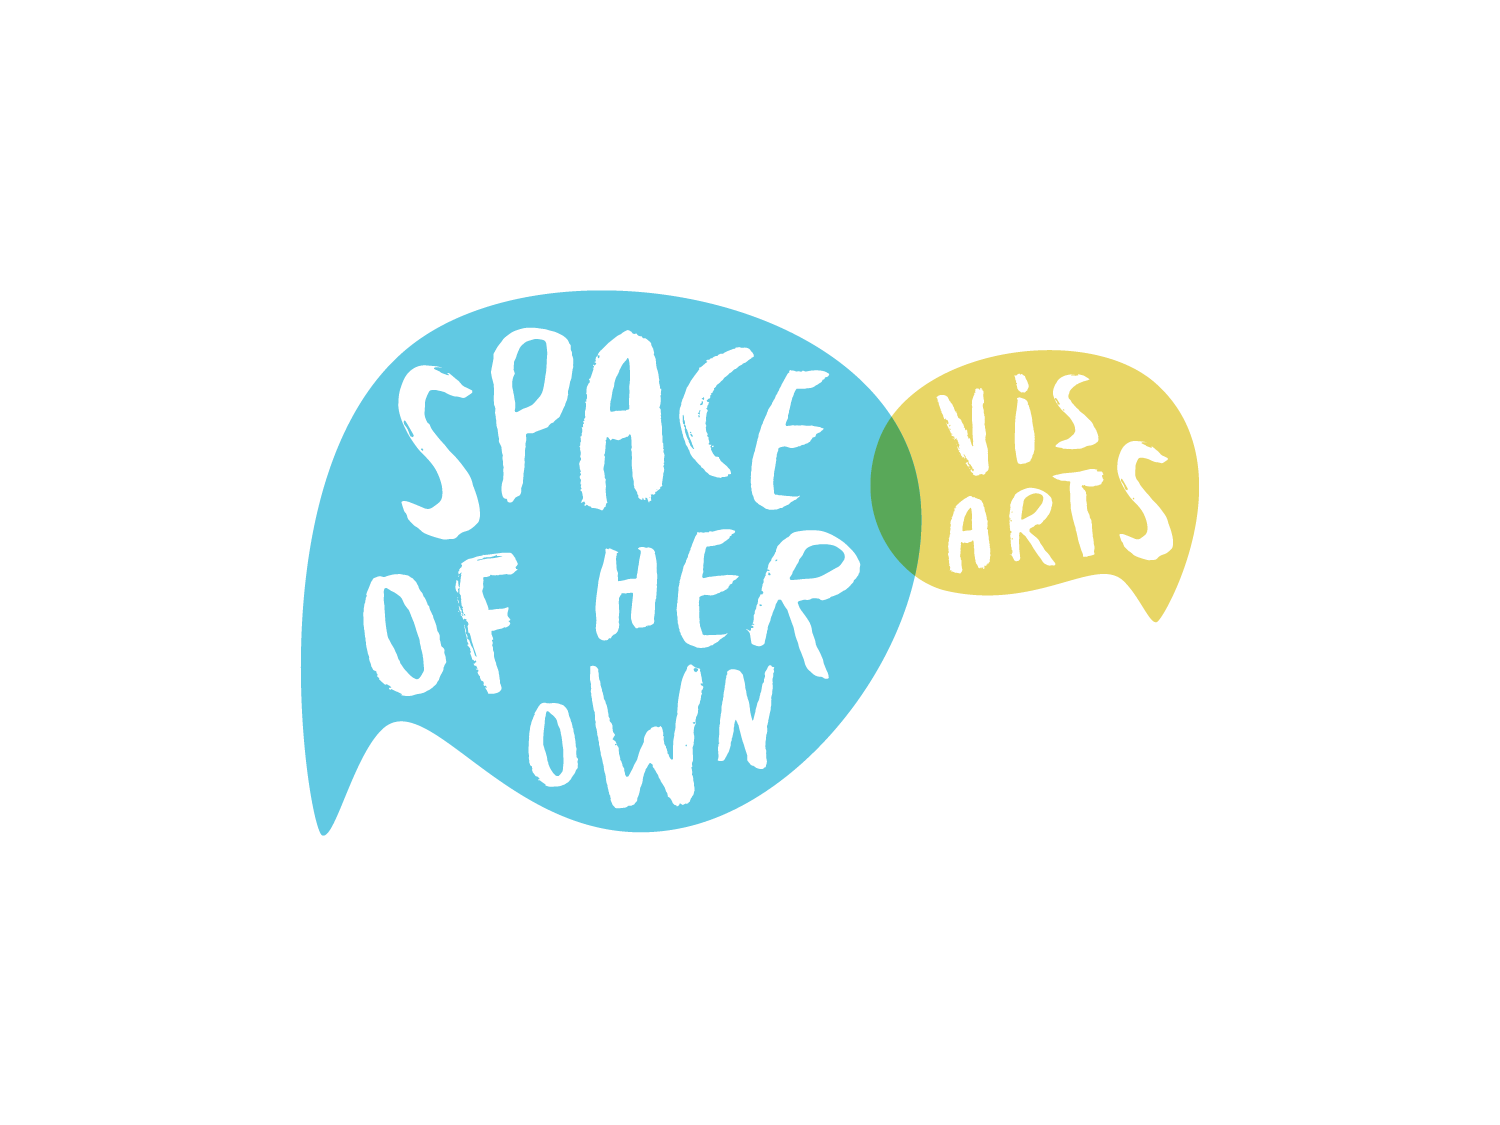 Space of Her Own mentorship mentor girls community outreach public art arts program youth nonprofit speech bubble illustration handlettering blue green colorful design logo identity branding